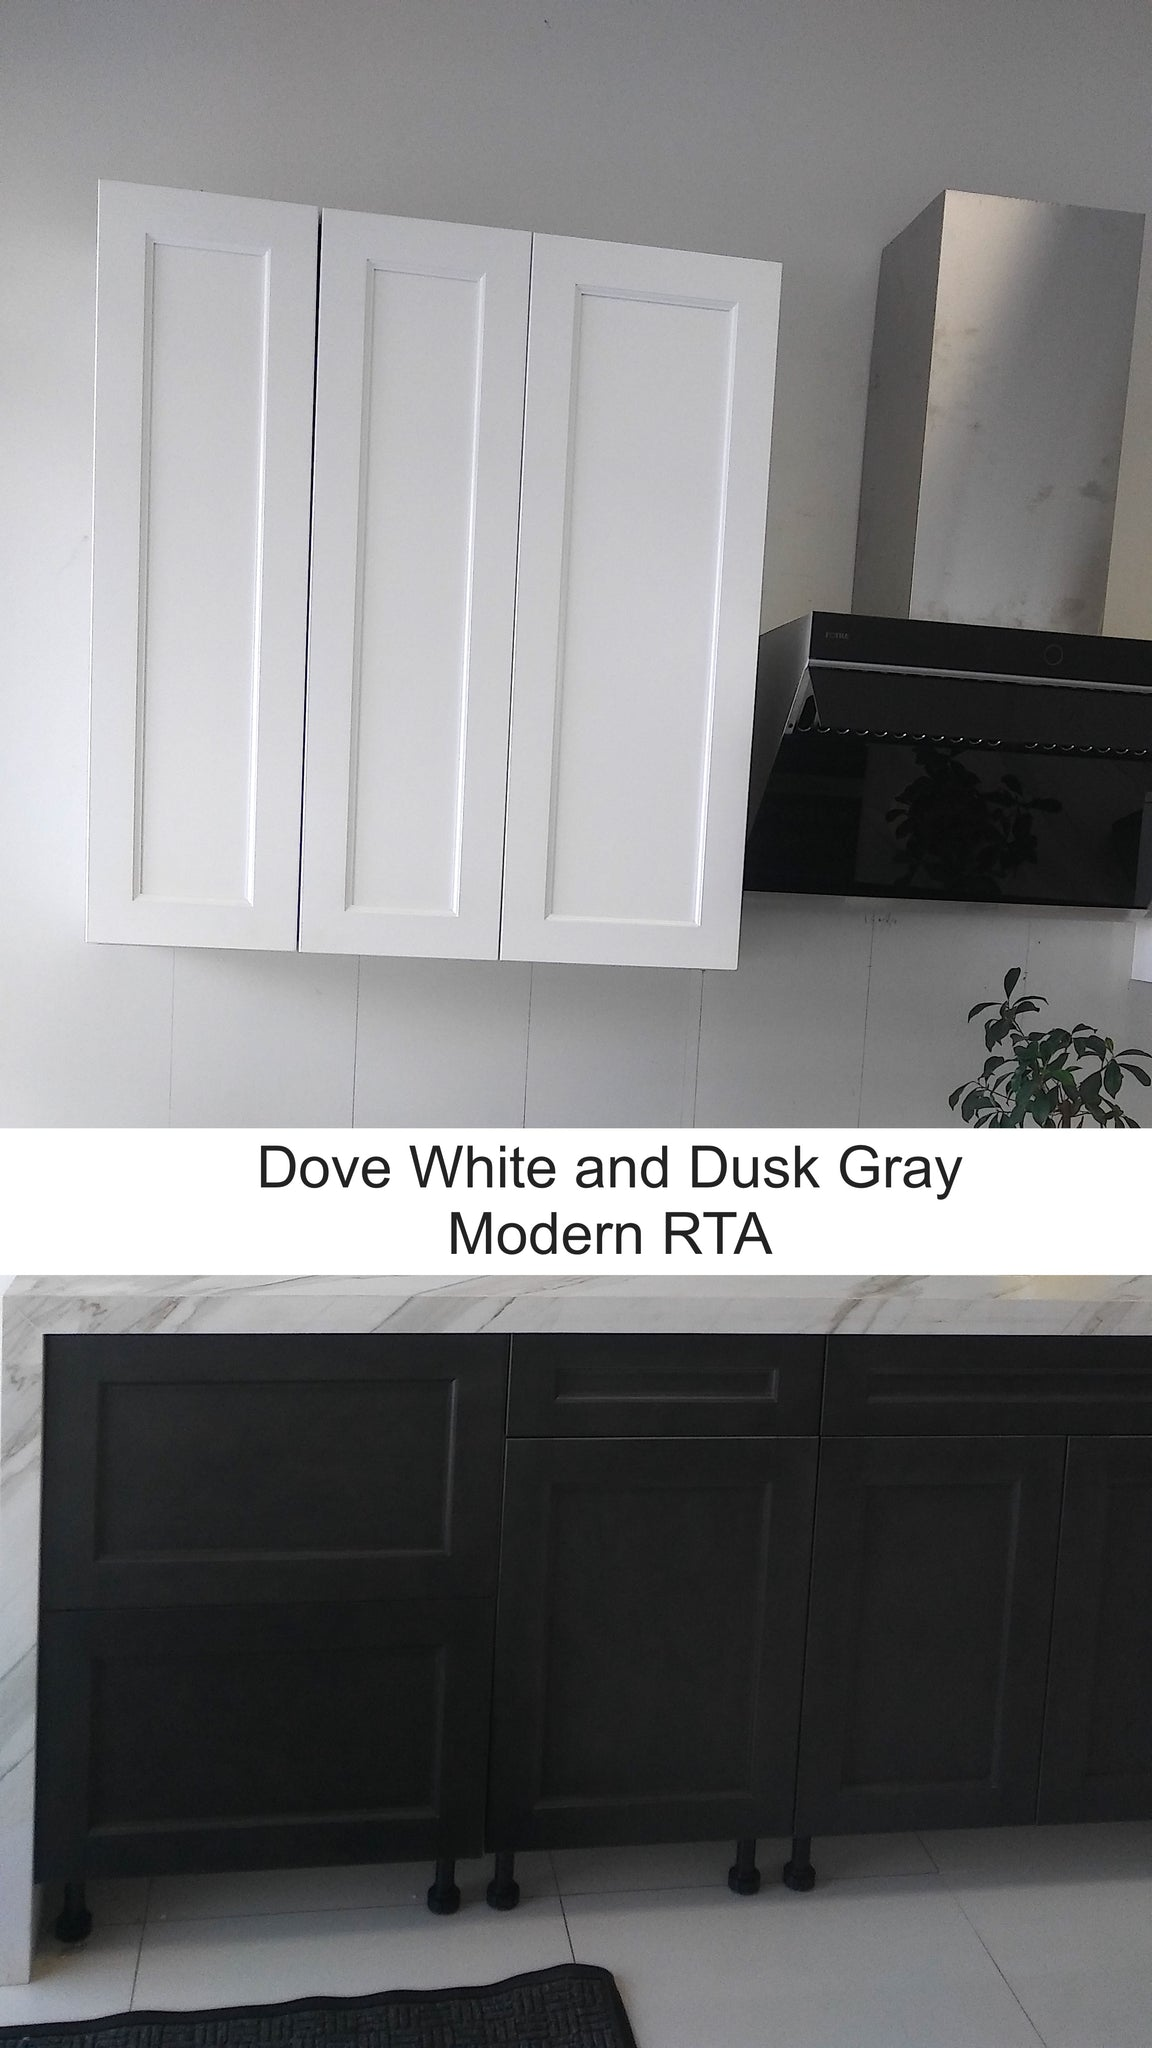 frameless shaker style dove white and dusk gray cabinets installed